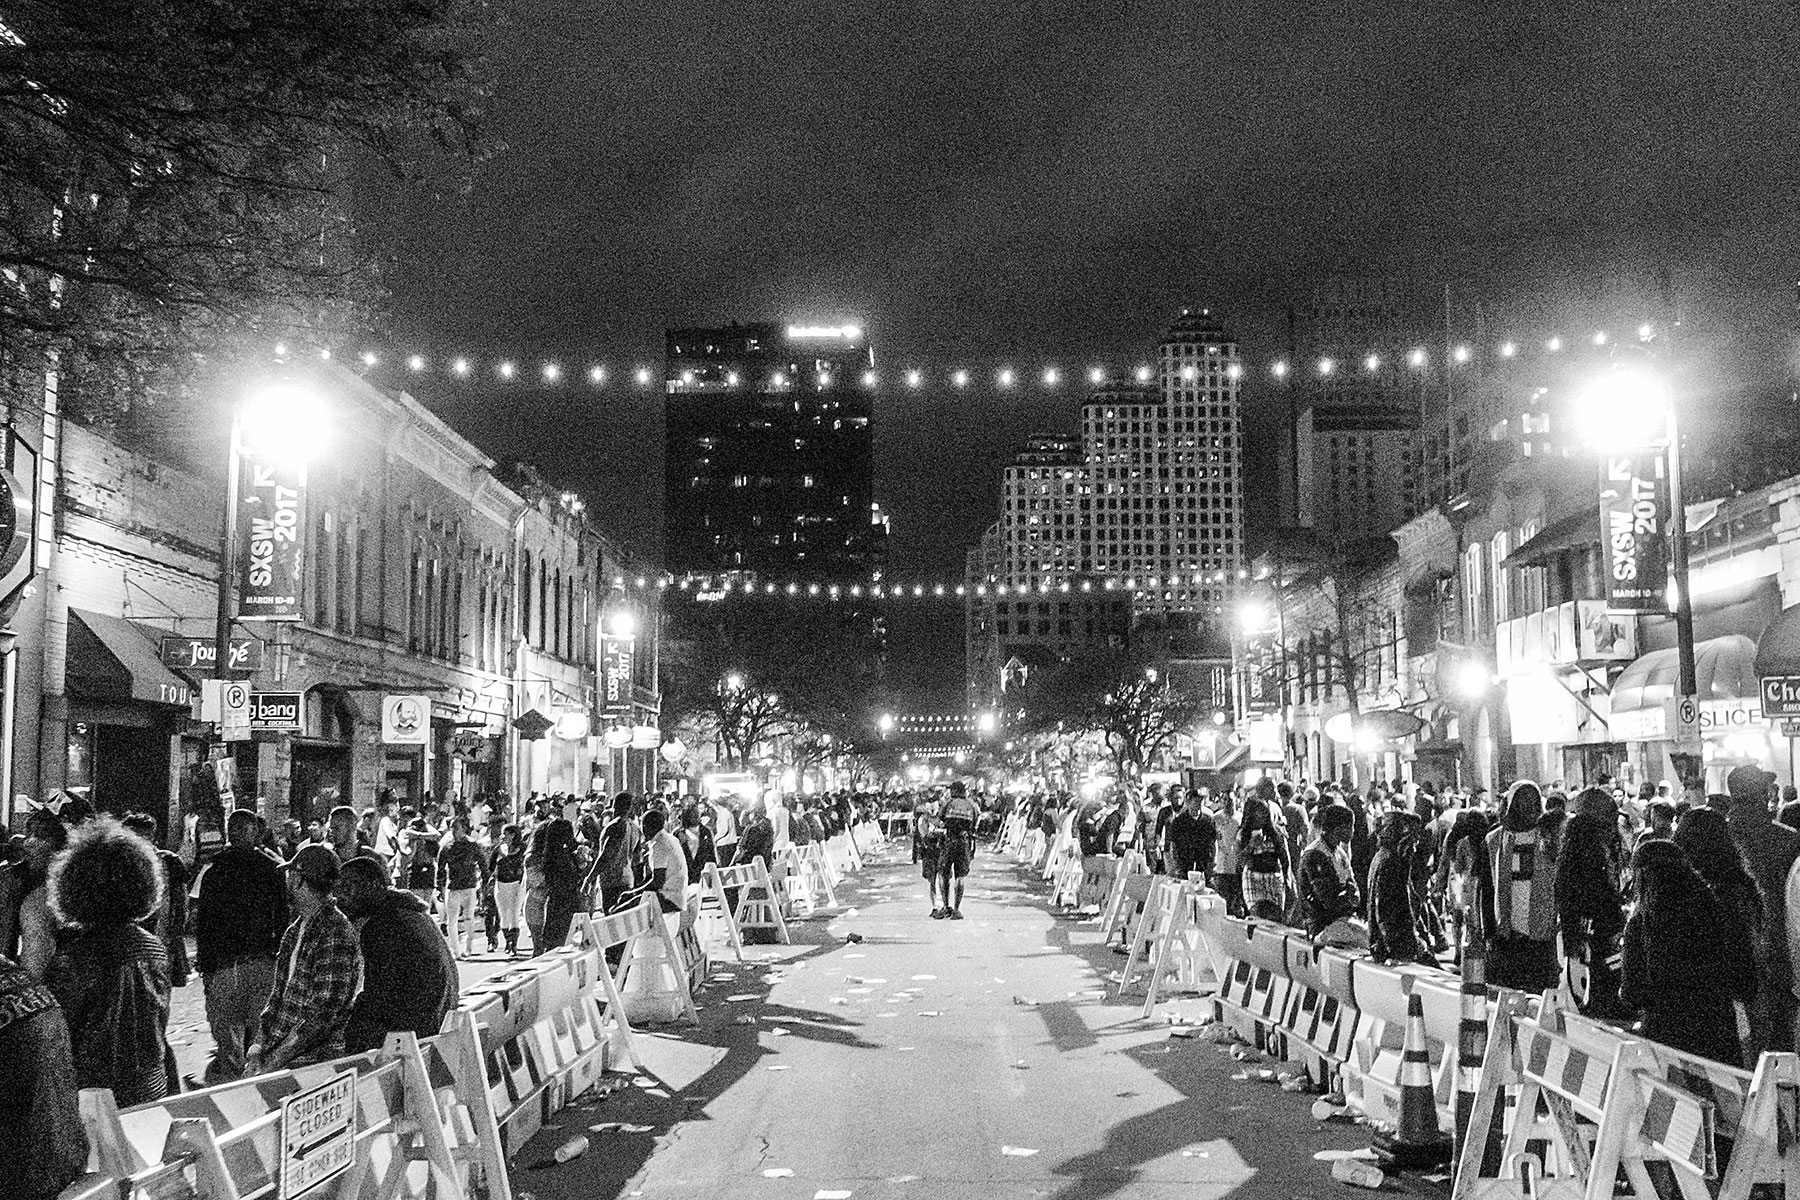 SXSW 2017 at Night